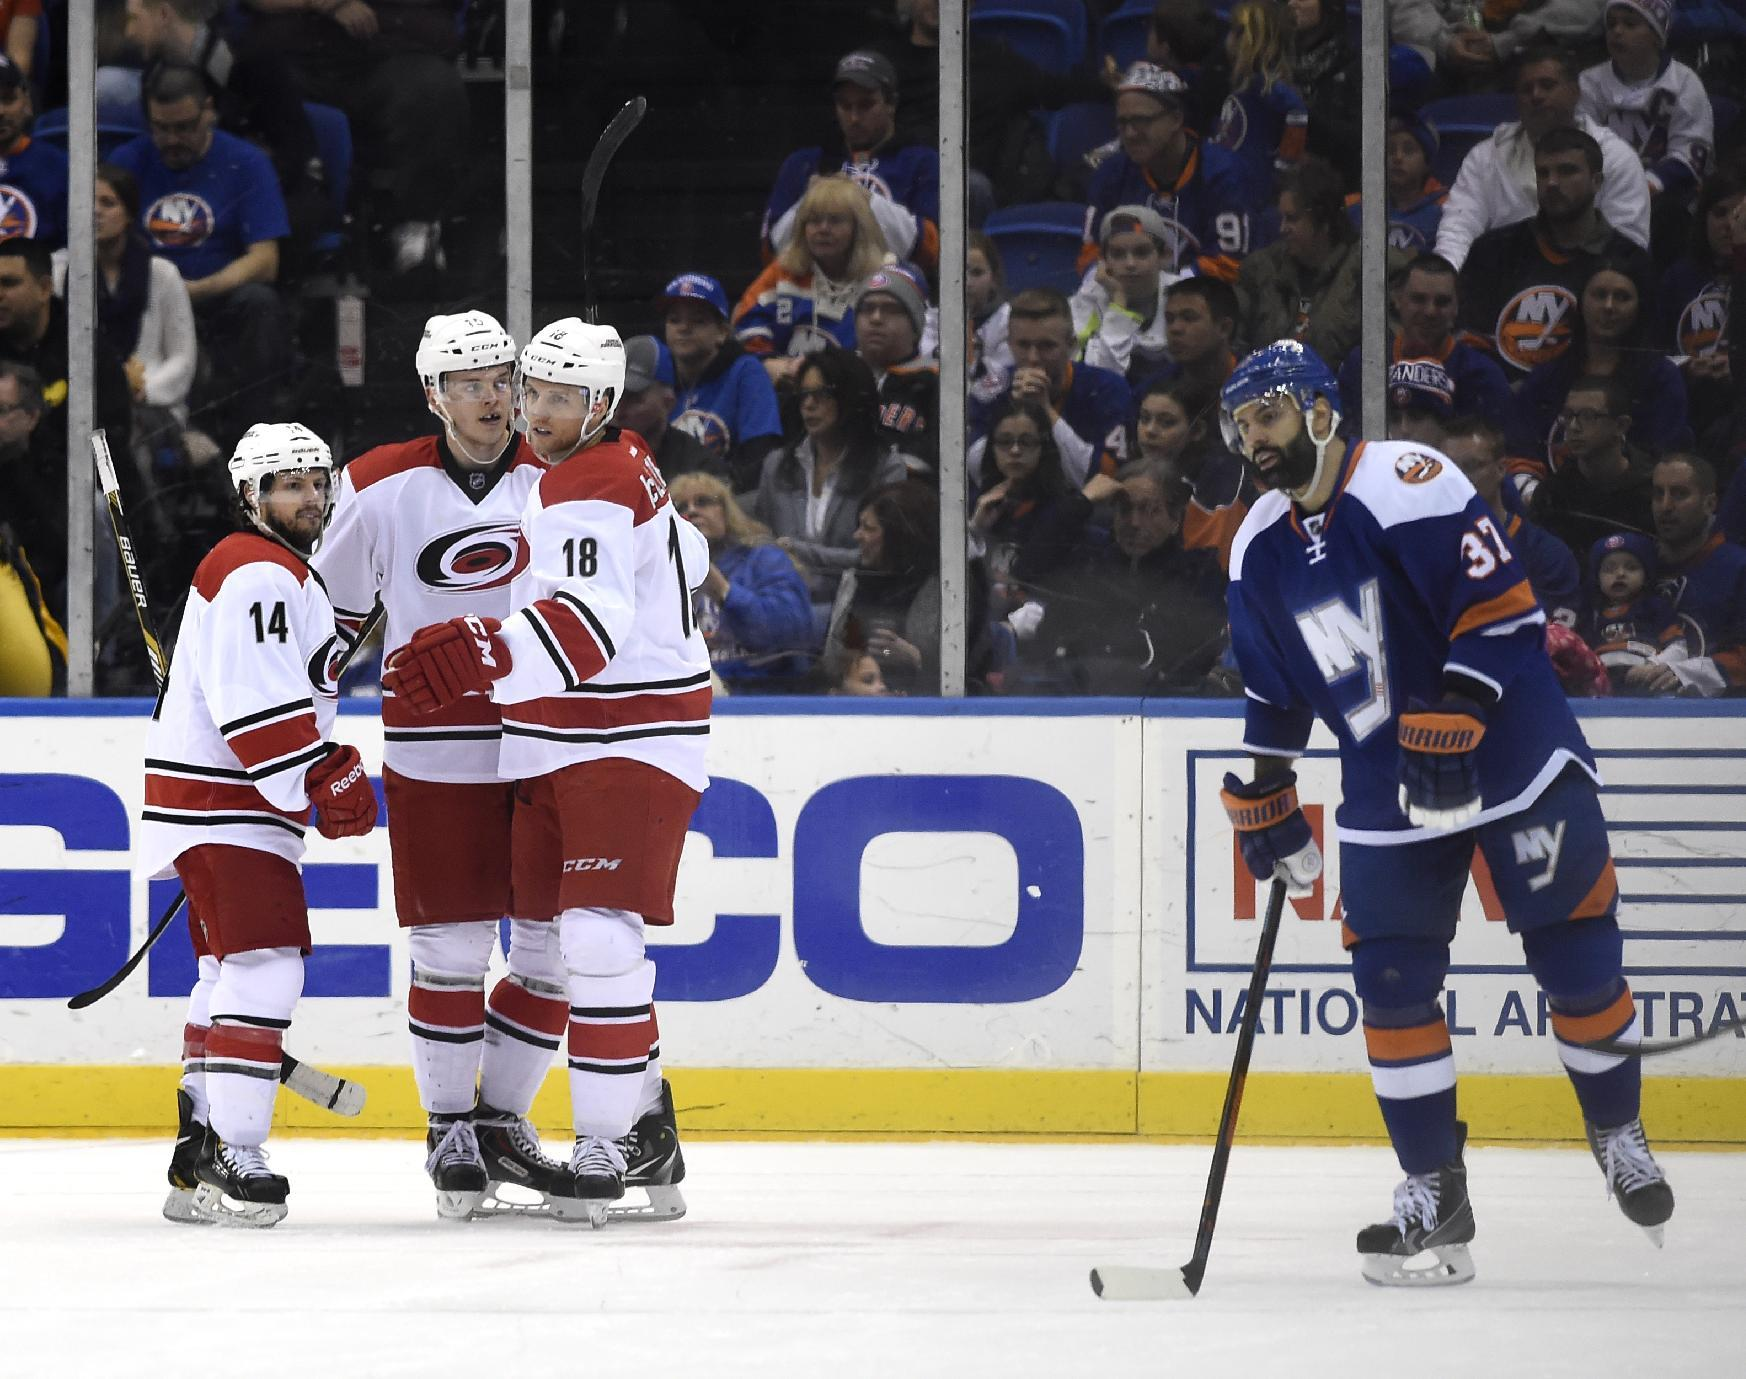 McClement scores 2 in Hurricanes' 5-3 win over Islanders